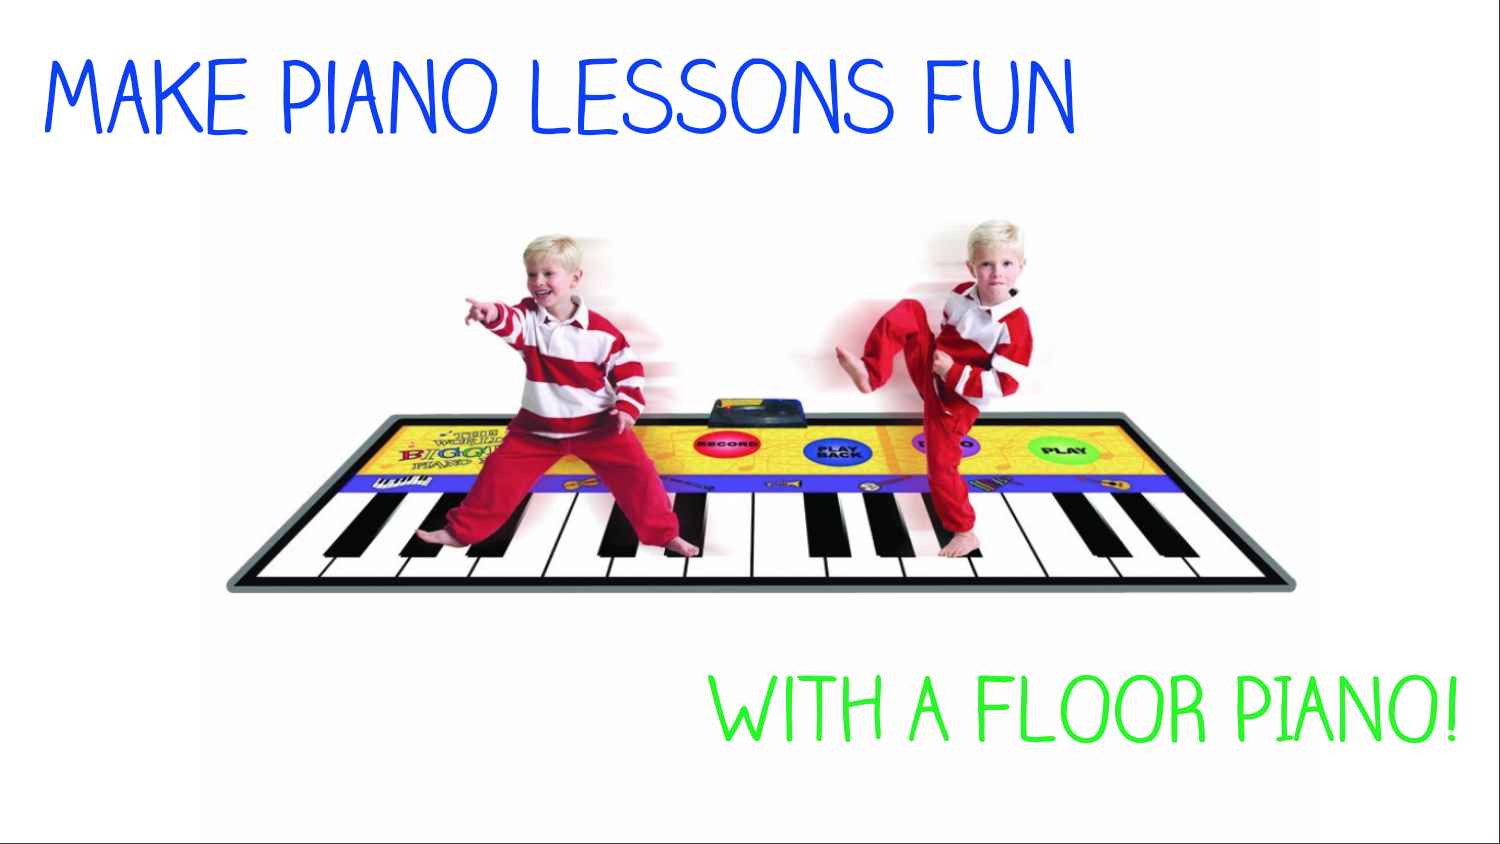 Make Piano Lessons Fun With a Floor Piano